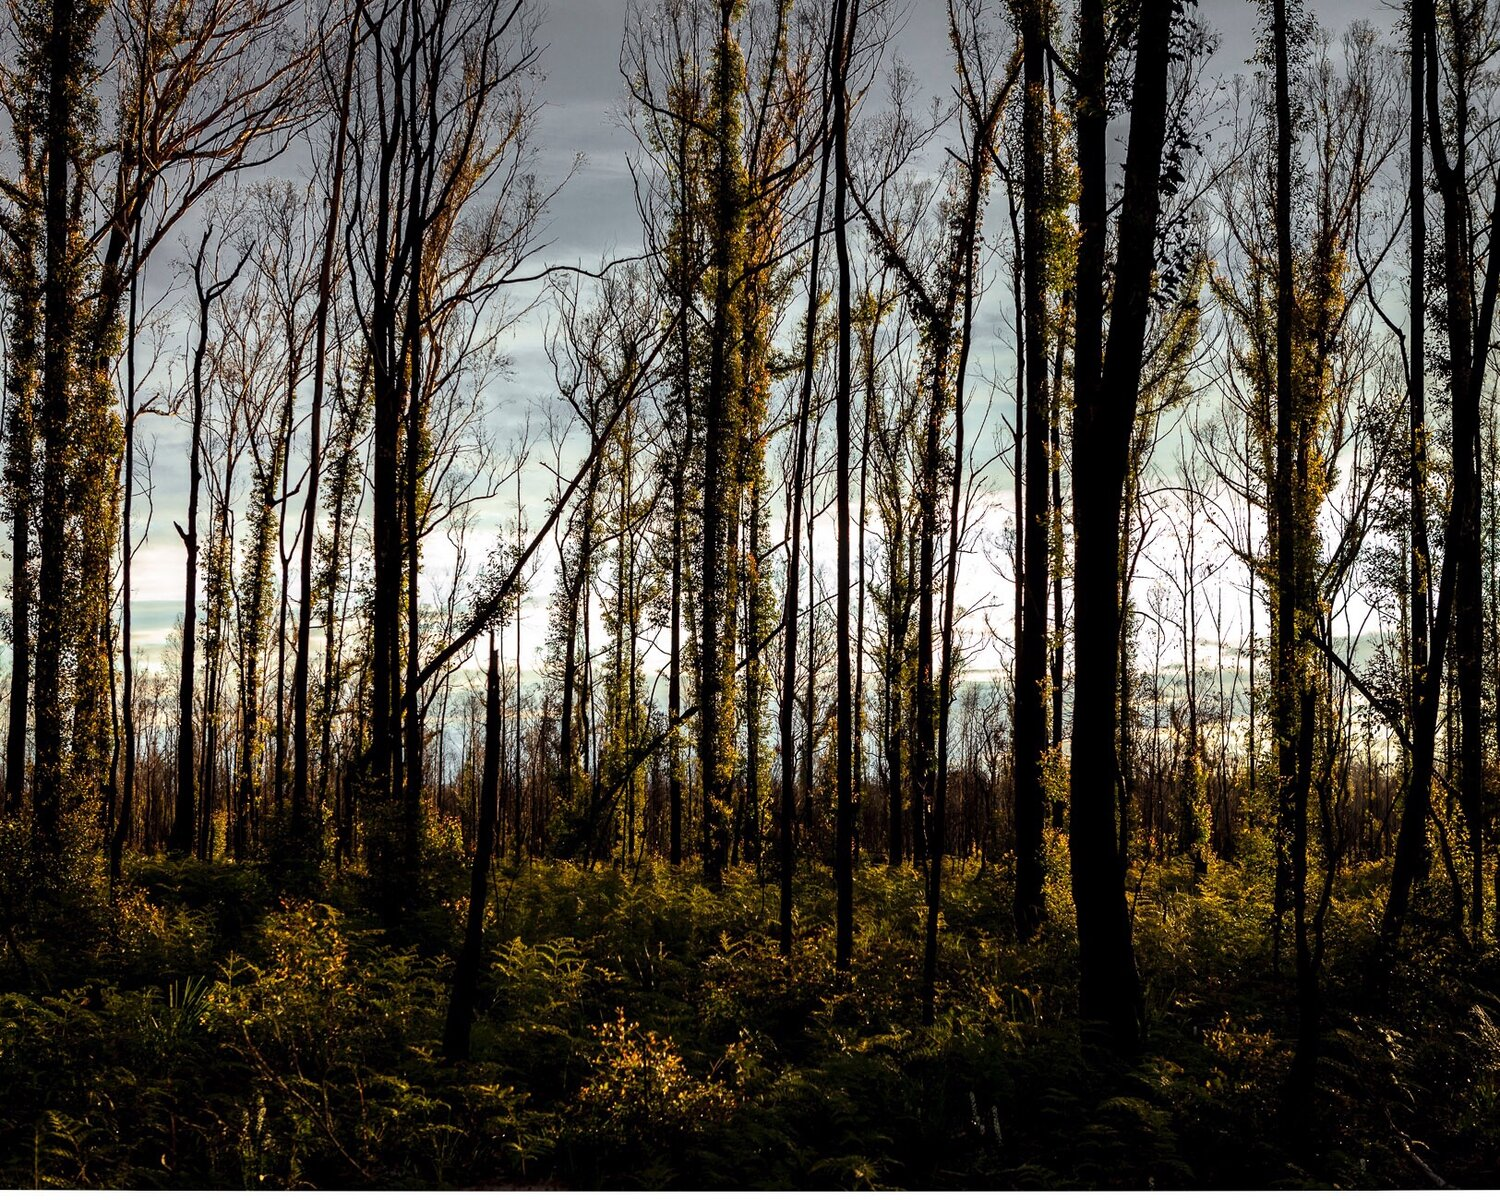 A fire ravaged Eucalypt forest